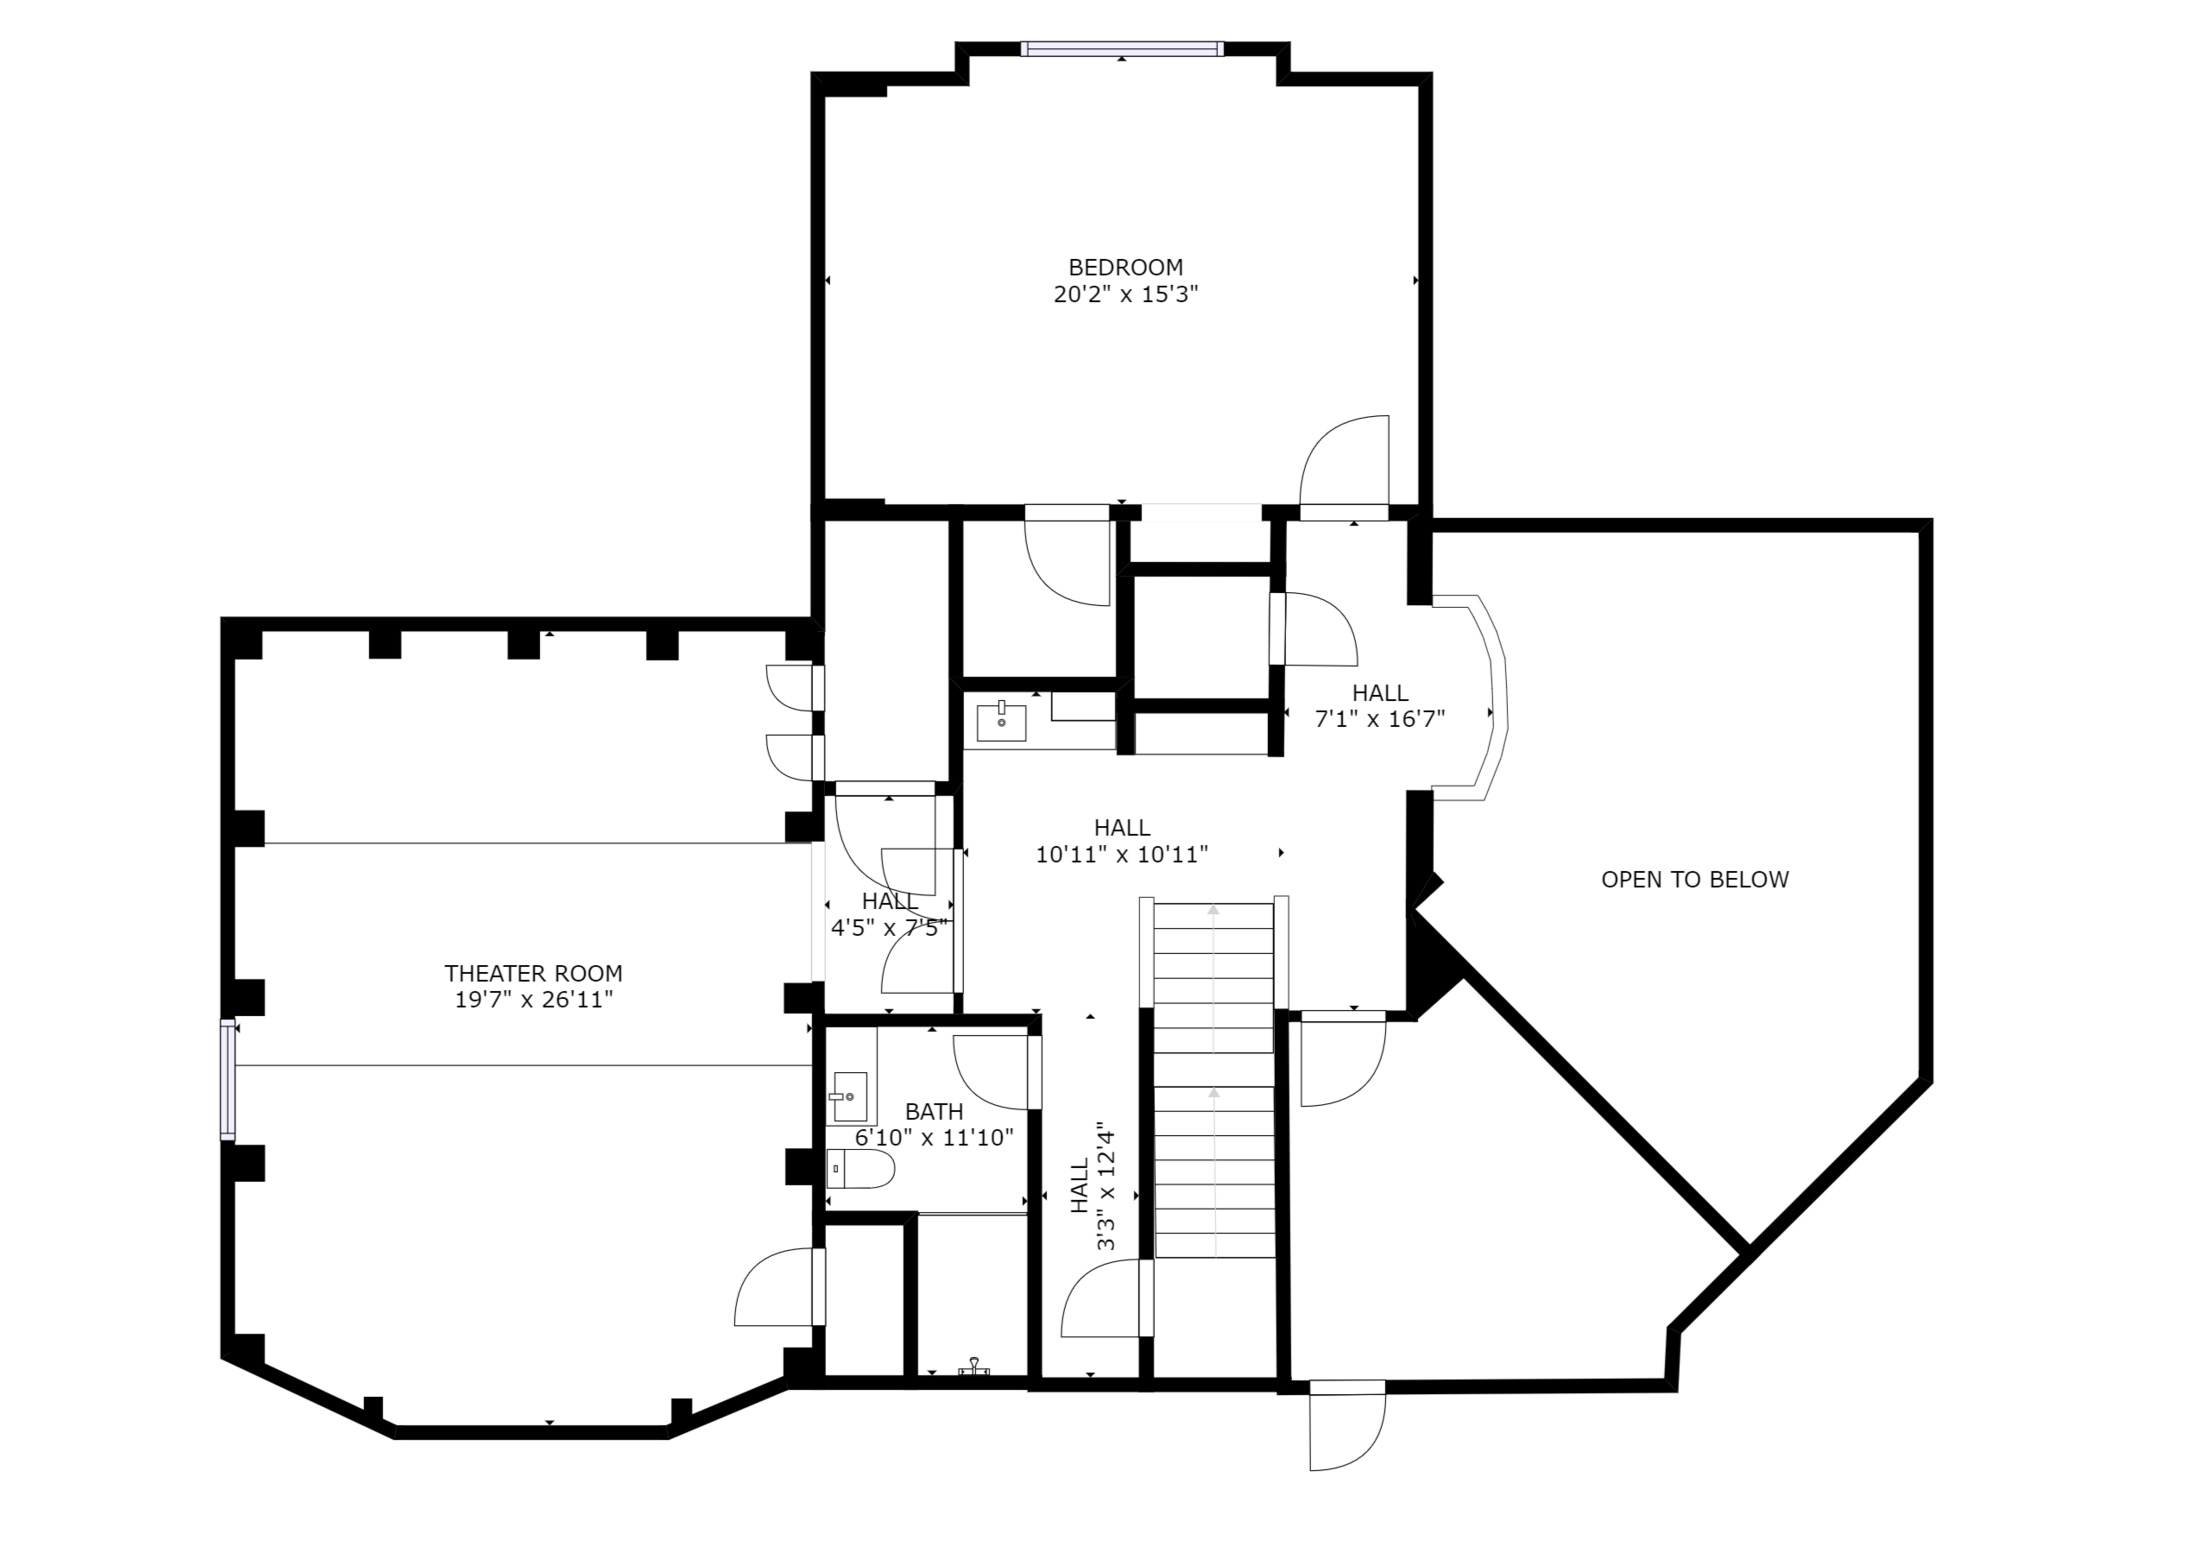 Second Floor – sizes and dimensions are approximate. Actual may vary.